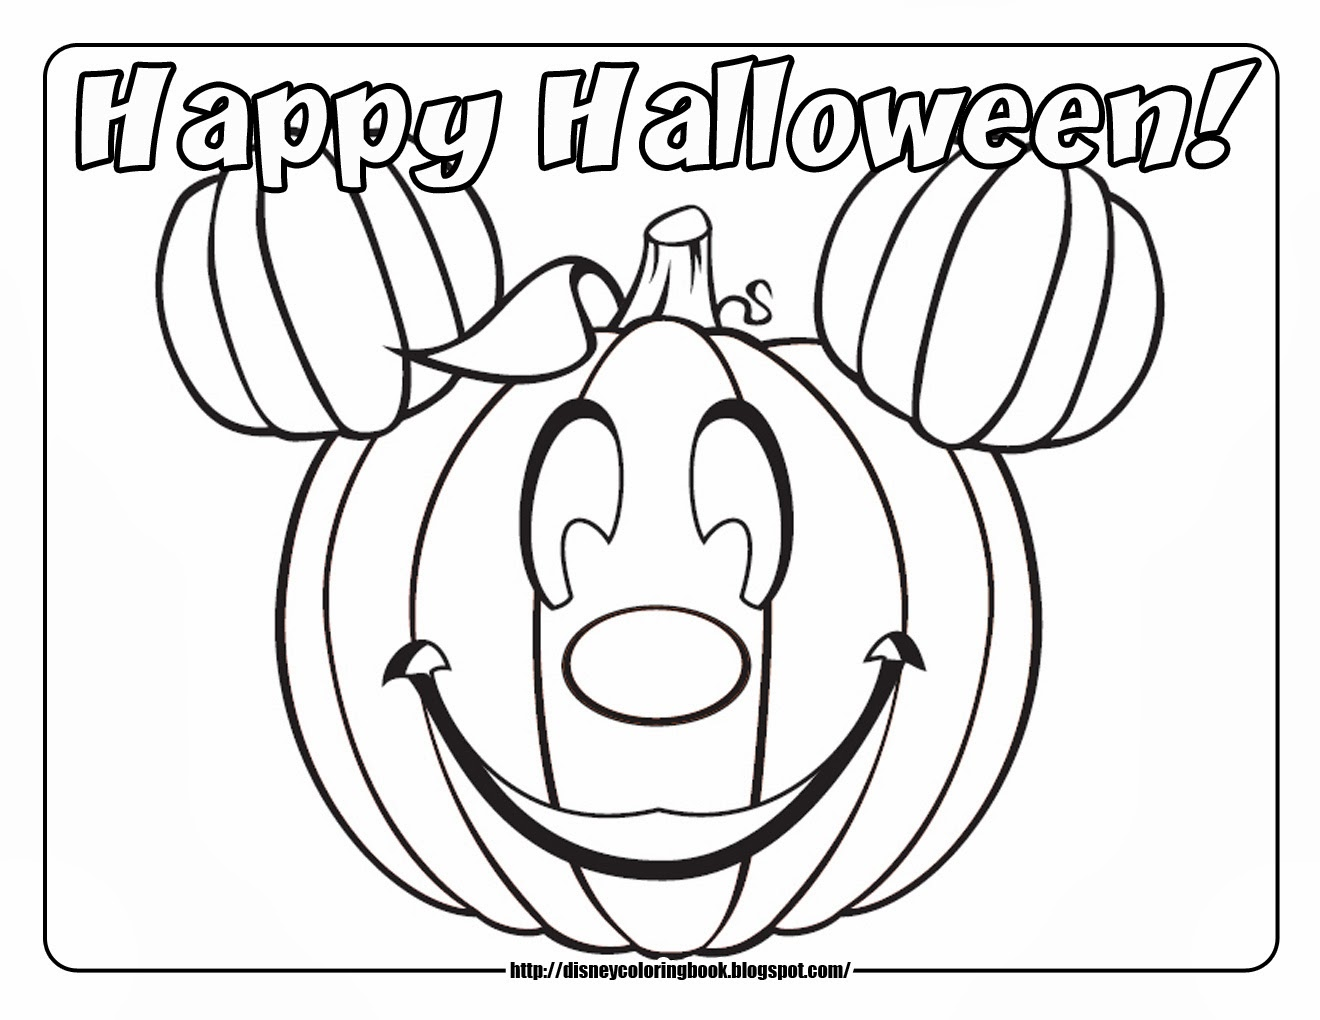 Halloween coloring pages free printable minnesota miranda for Happy halloween coloring pages printable